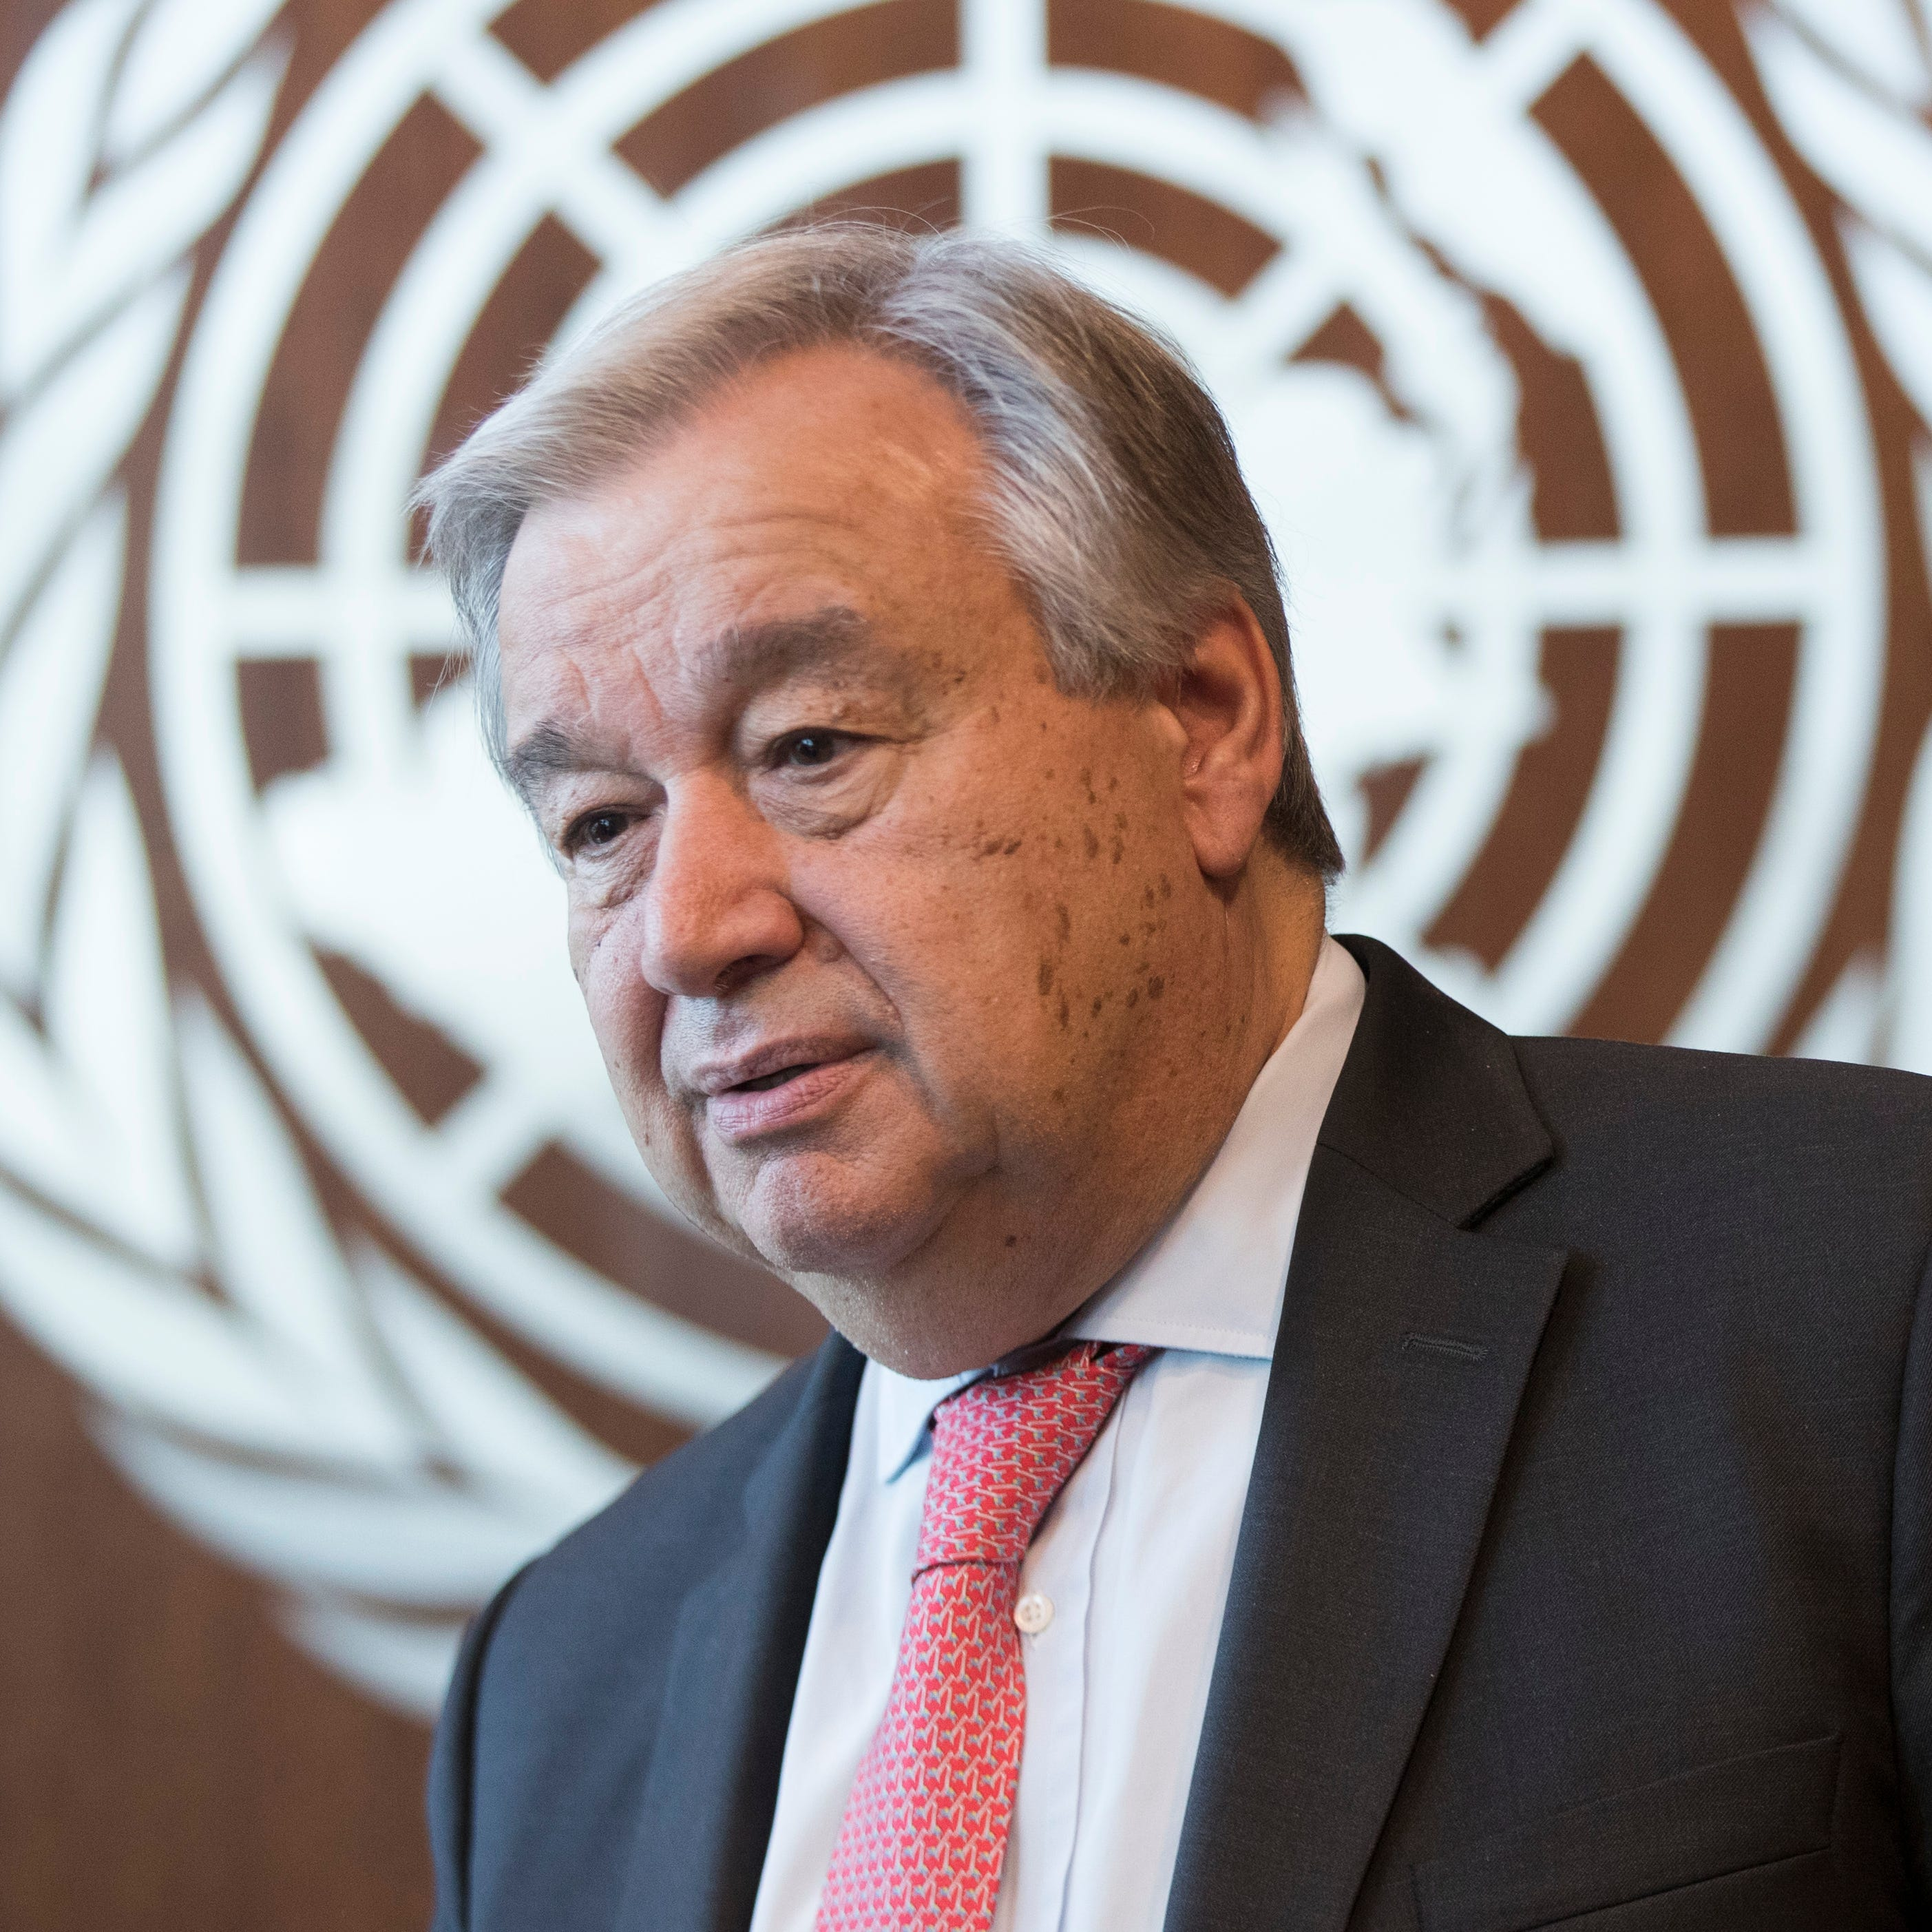 UN chief says 'total disaster' if warming not stopped